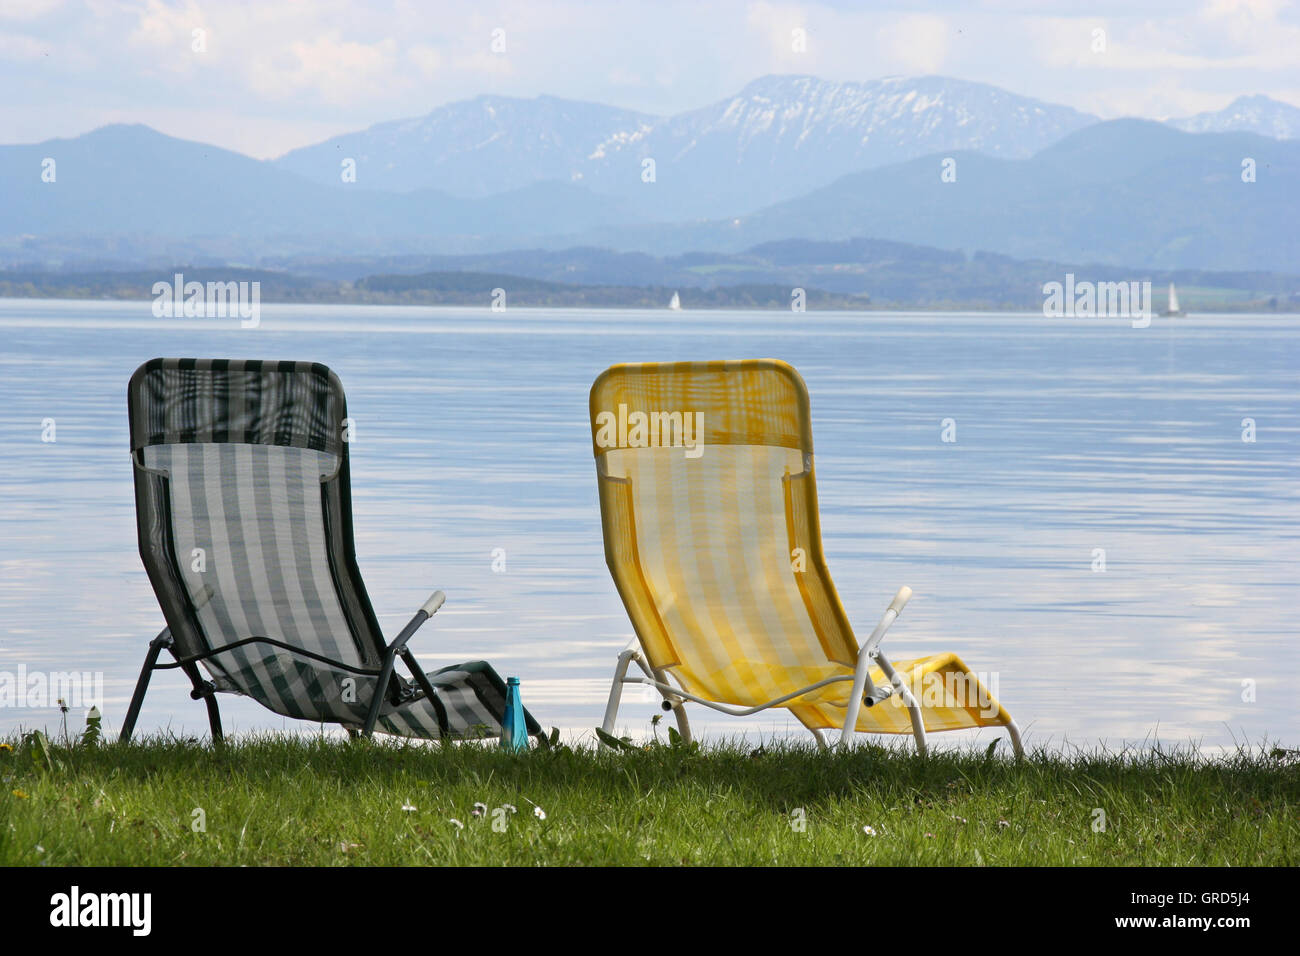 Two Unoccupied Beach Chairs - Stock Image